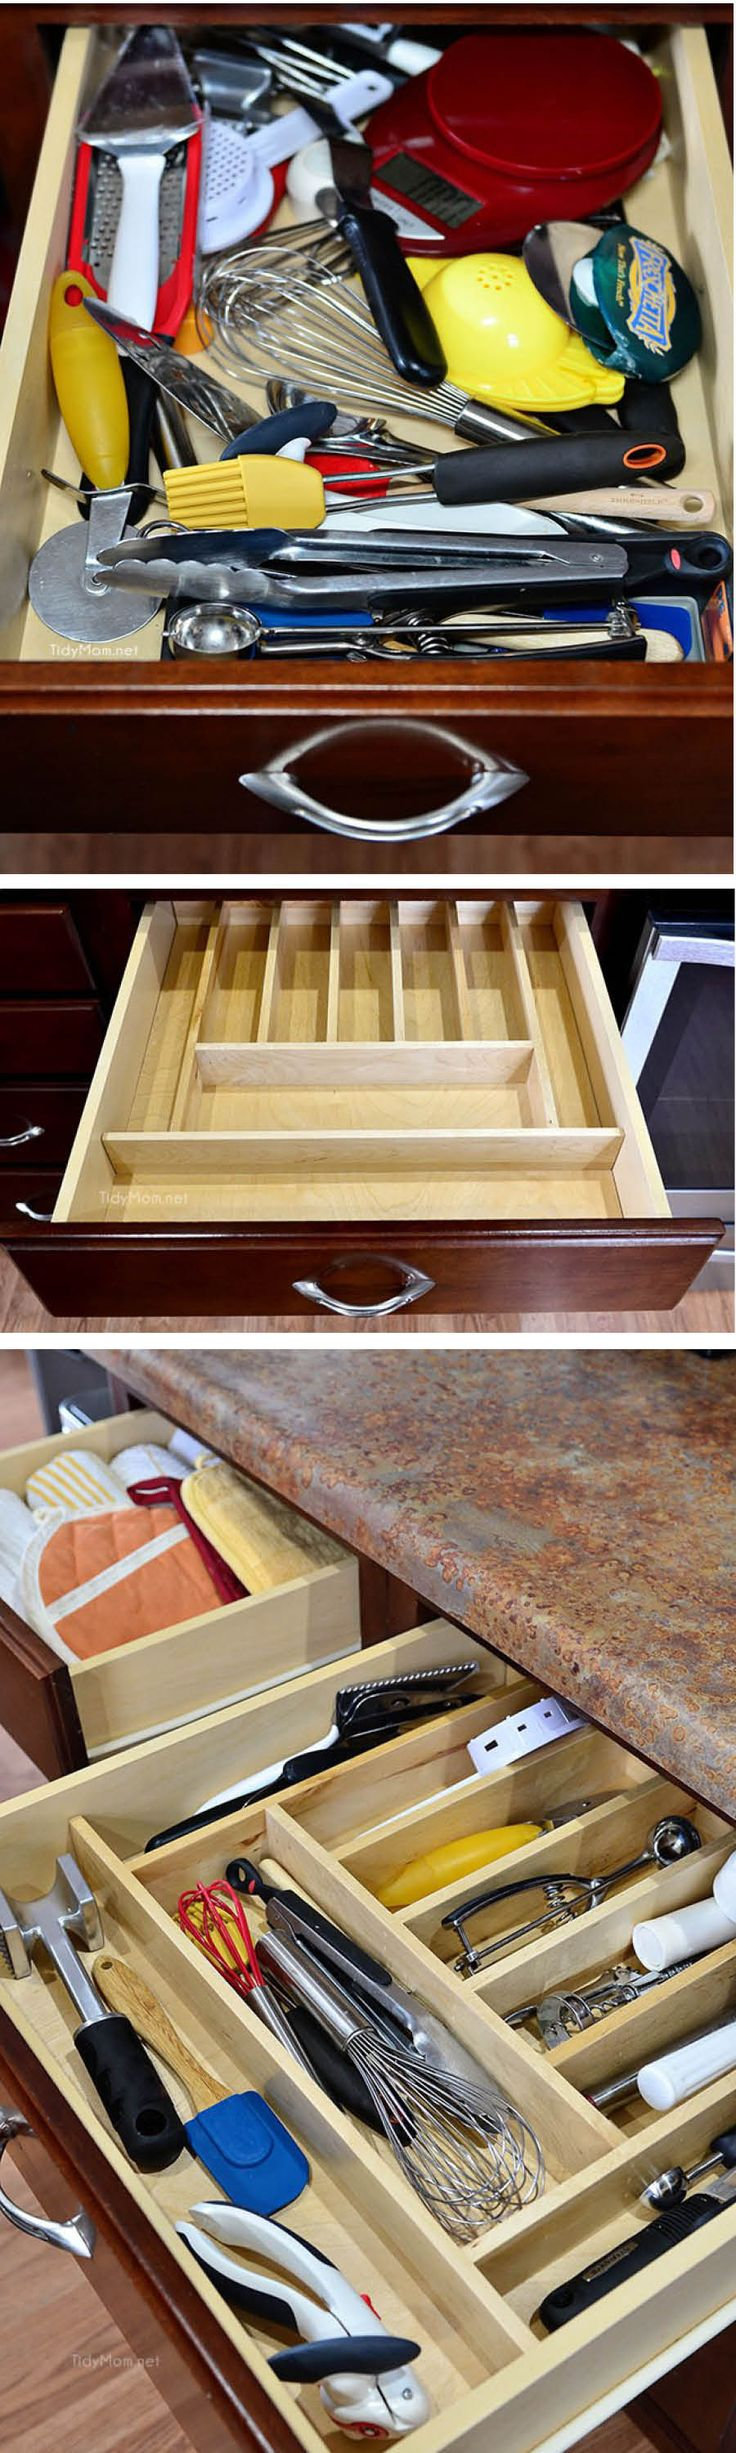 Get organized in 2016! See how @tidymom tamed her kitchen utensil drawer with @masterbrandinc. #CupboardConfessions